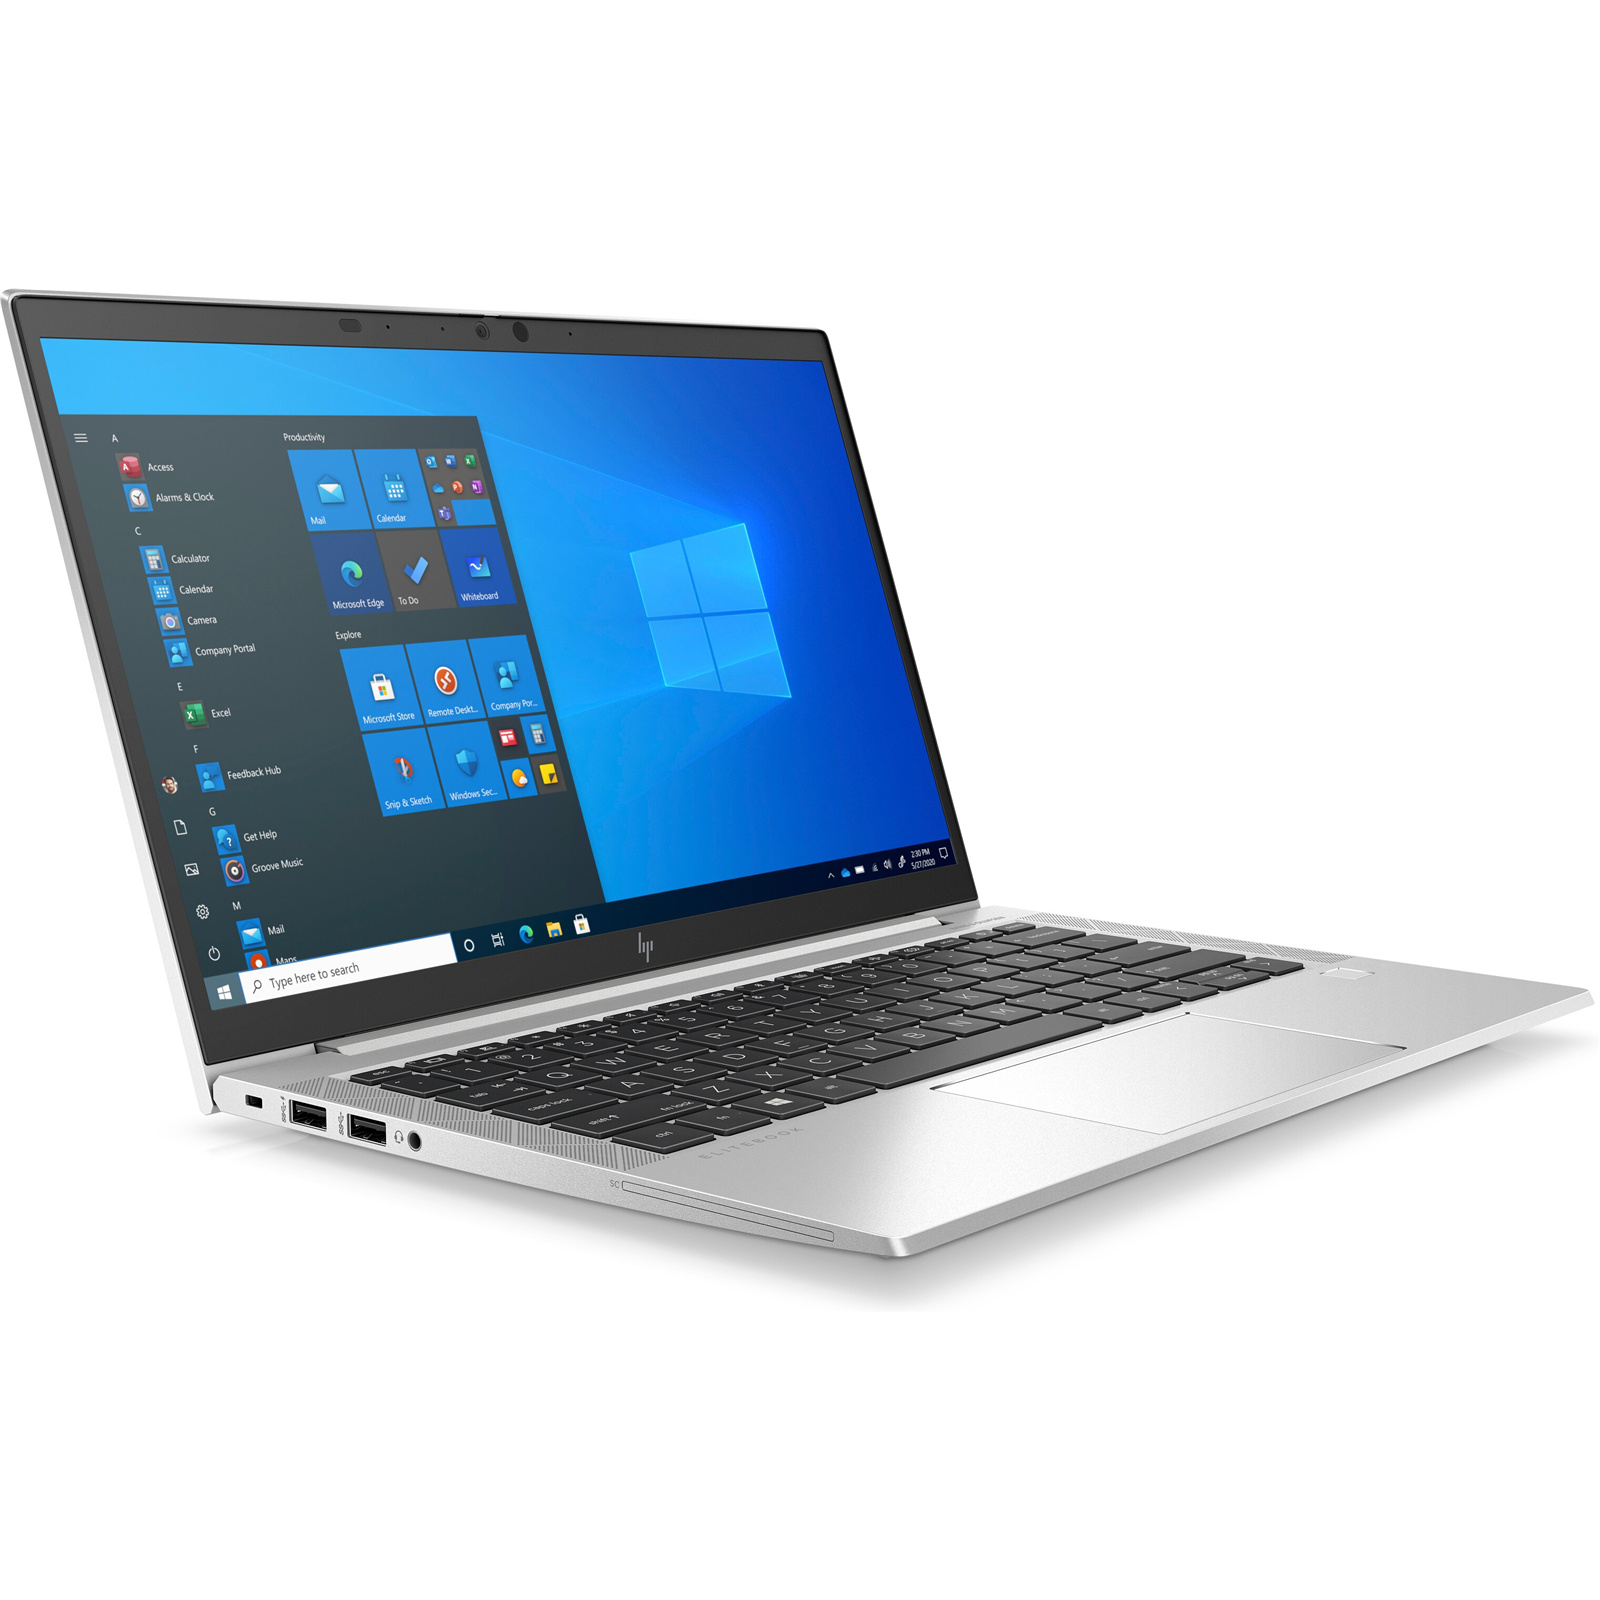 "HP Elitebook 830 G8 38A58PA 13.3"" Business Laptop - i5-1145G7 vPro, 16GB, 512GB, 4G, Windows 10 Pro, Touchscreen"